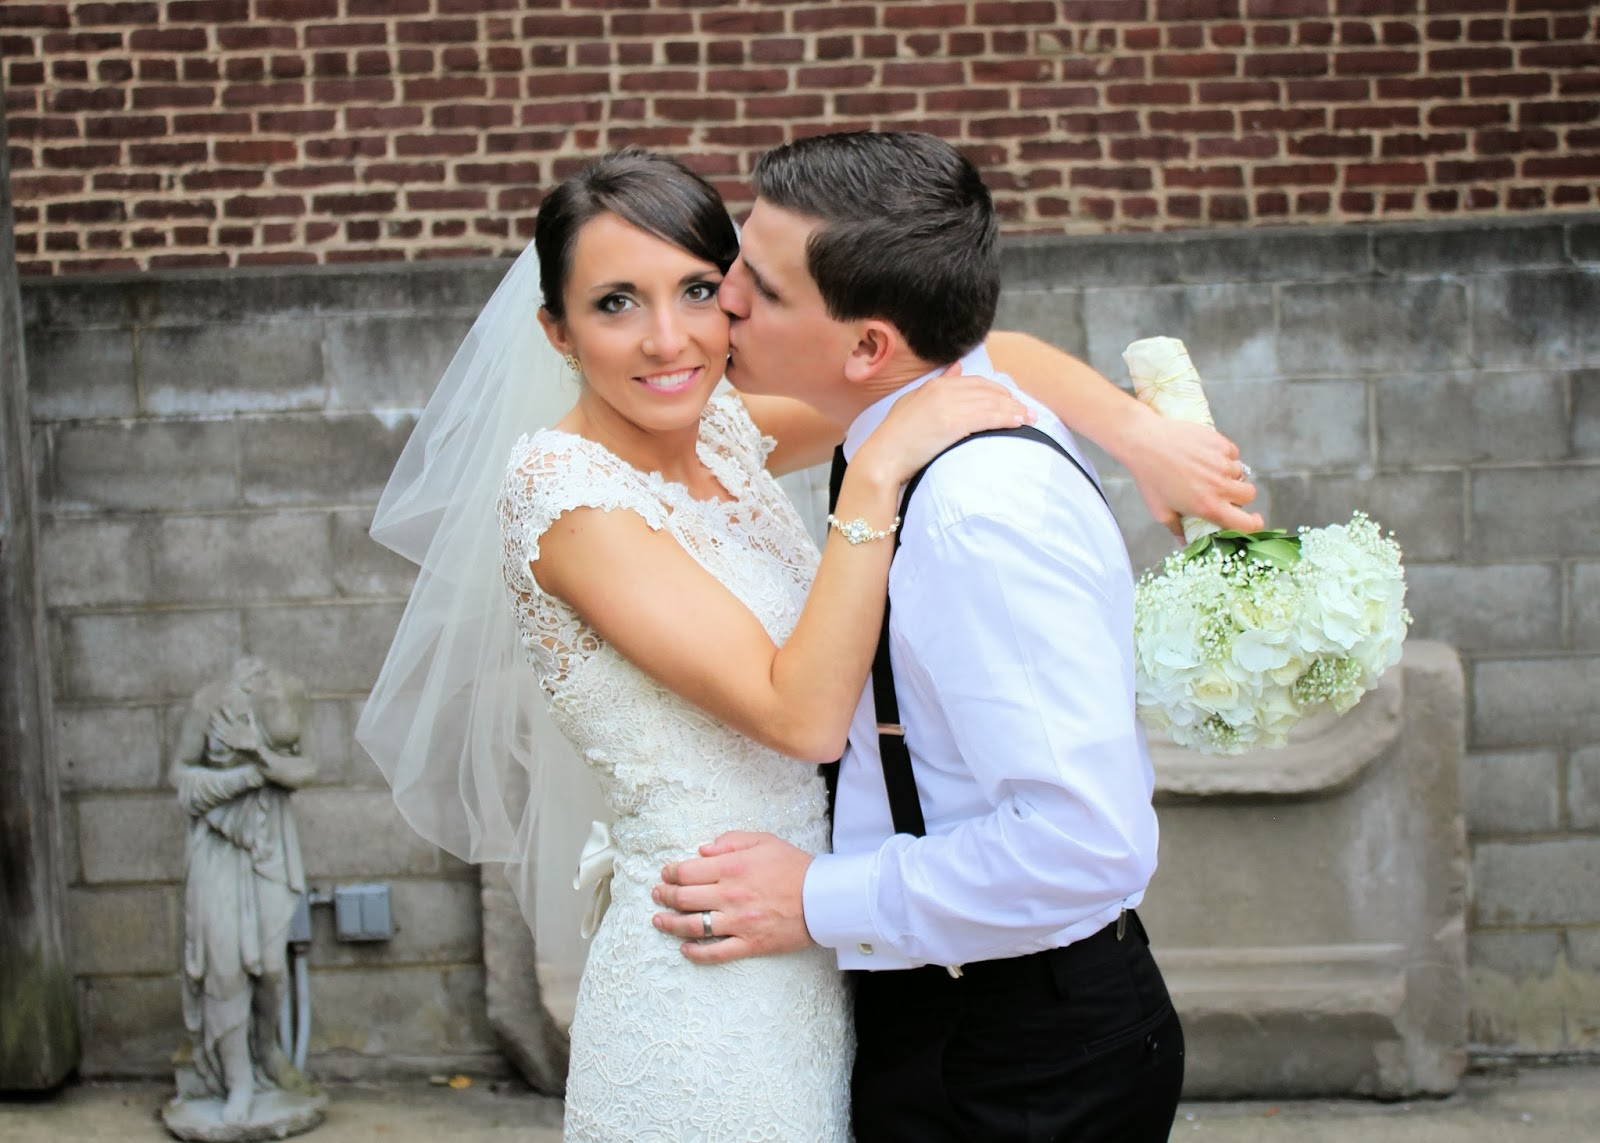 Wedding Dresses Pittsburgh Pa 57 Luxury Our venue was The